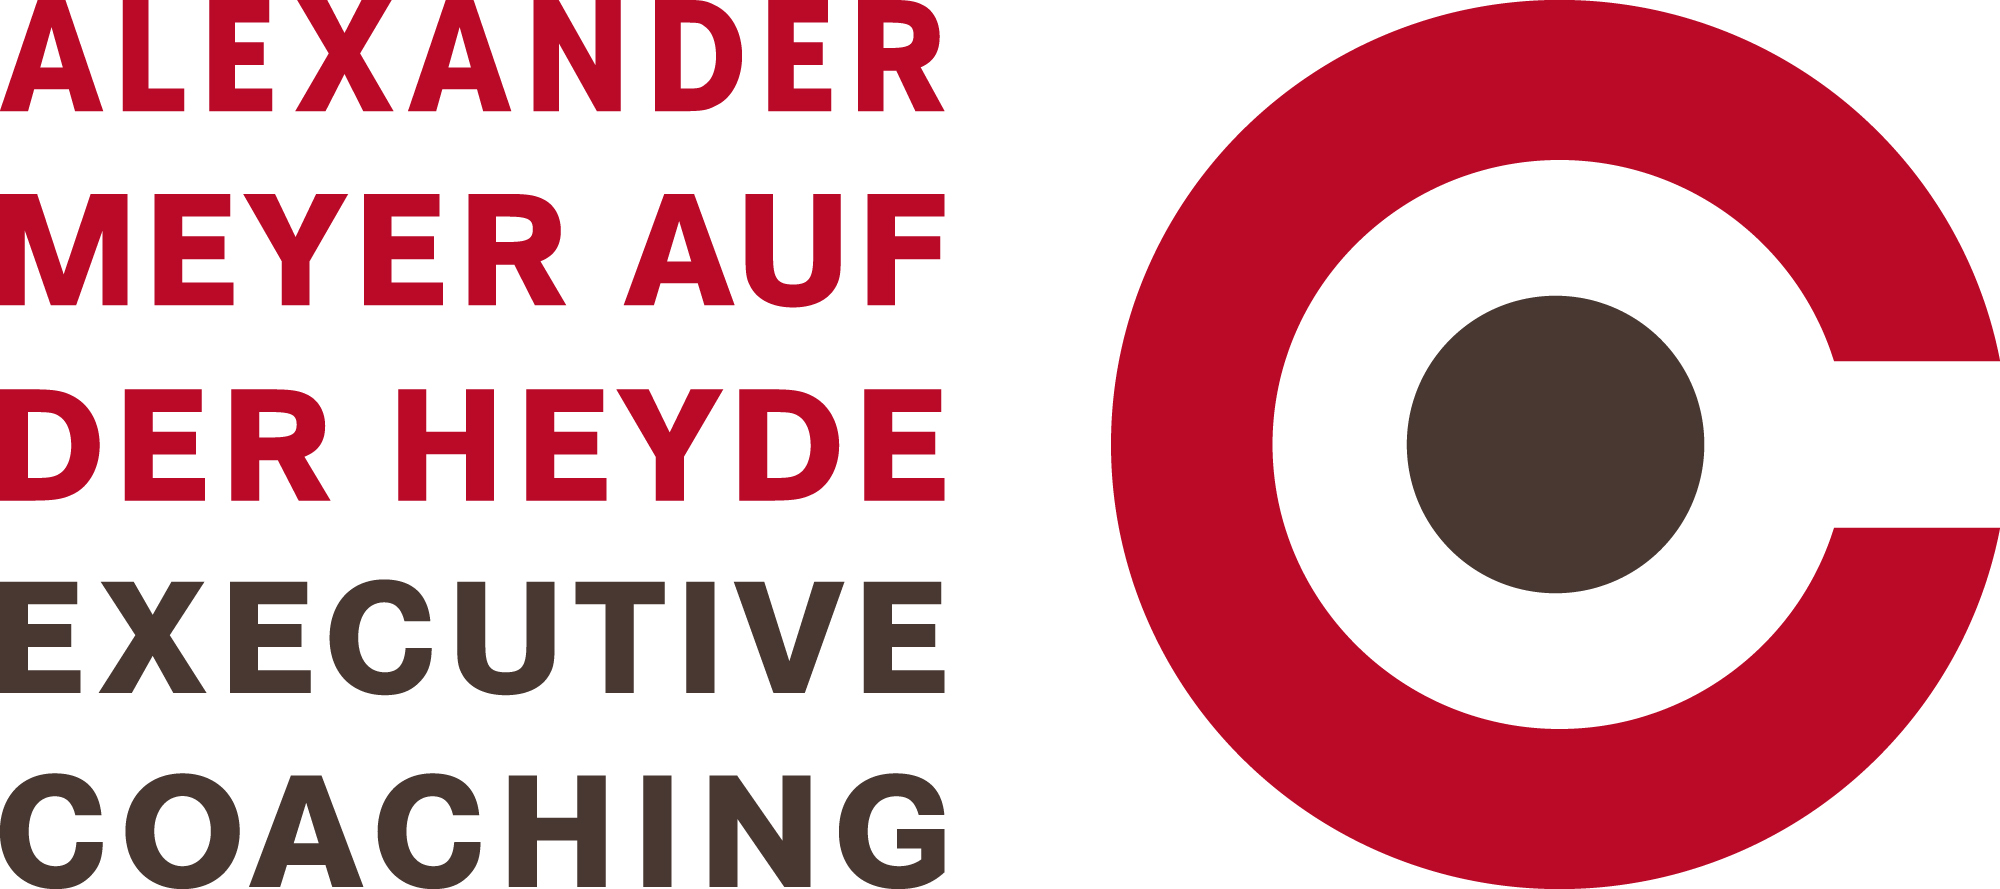 Alexander Meyer auf der Heyde Executive Coaching